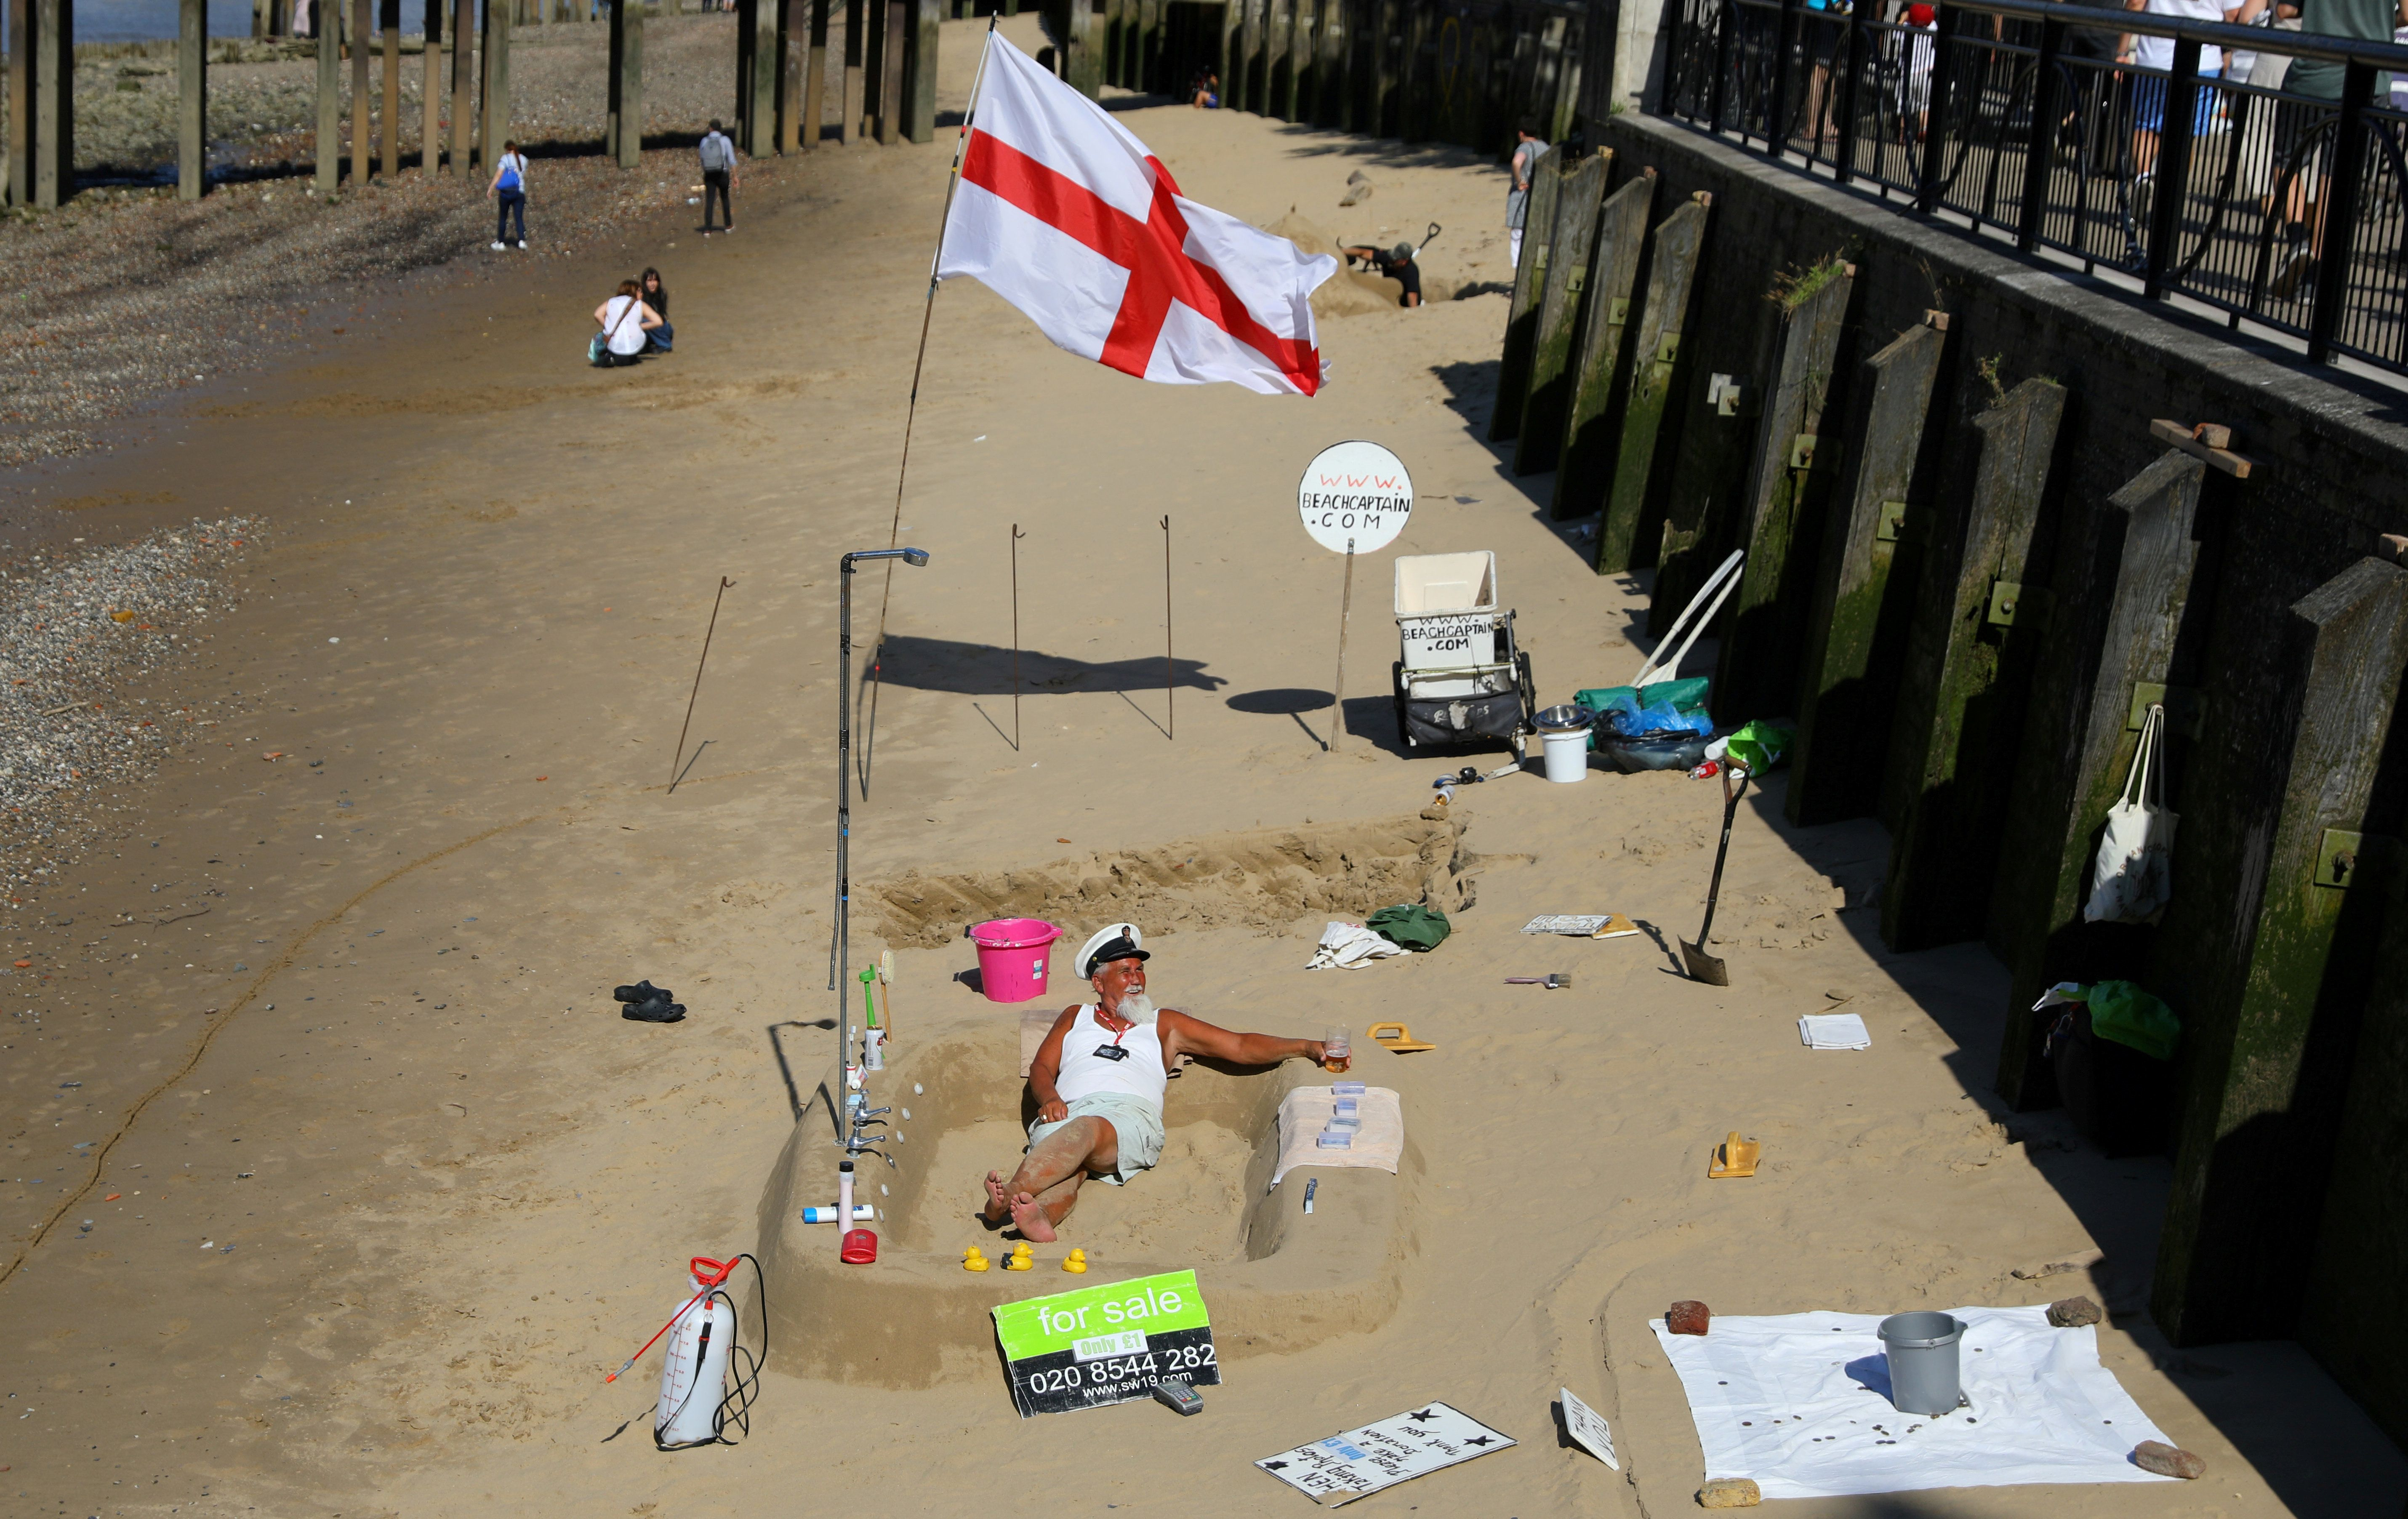 A man sits on the sand of a beach revealed by a low tide of the River Thames.